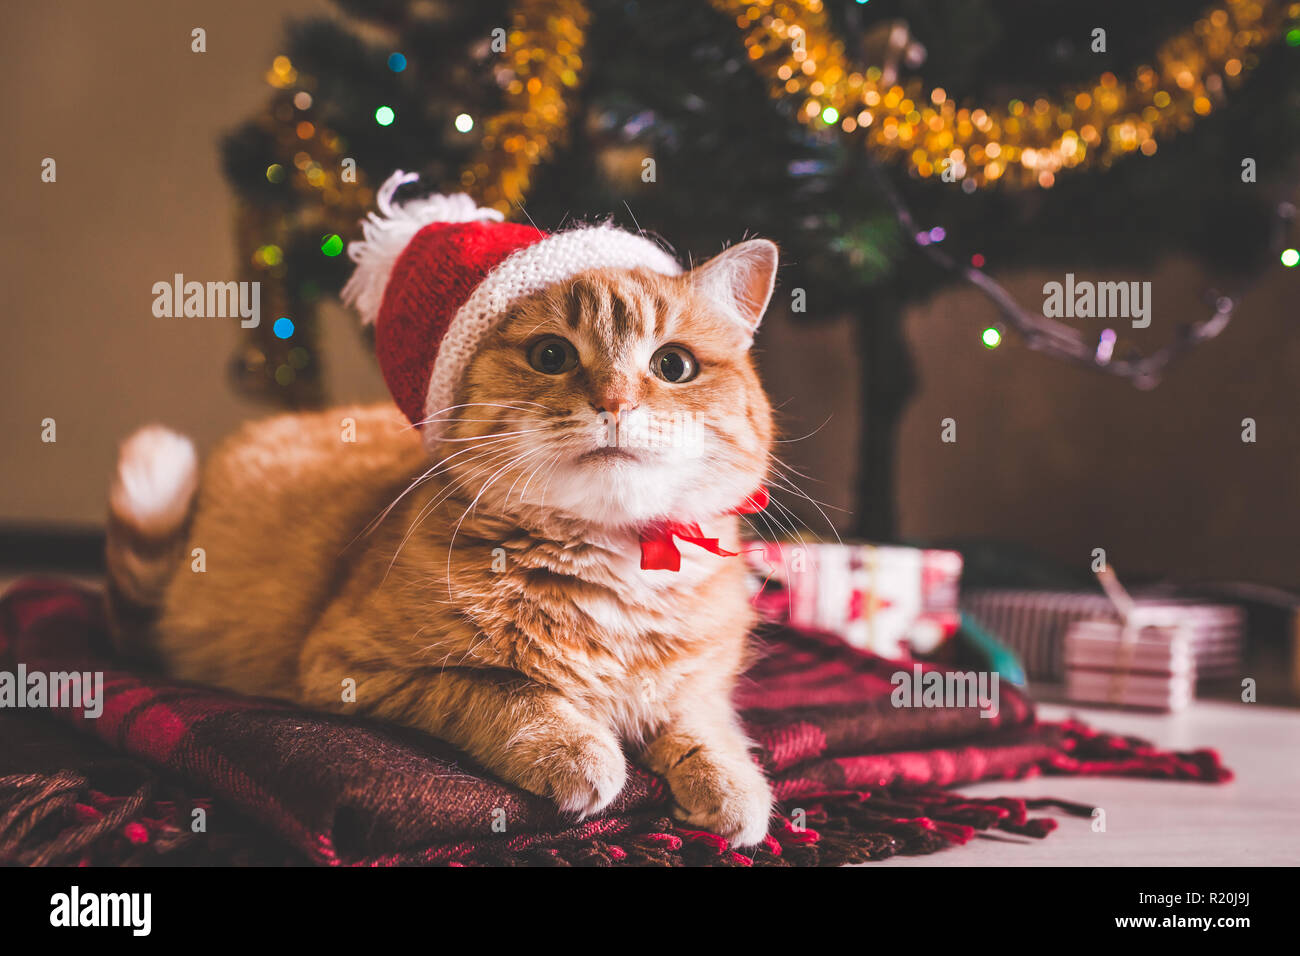 Red cat wears Santa's hat lying under Christmas tree. Christmas and New year concept - Stock Image